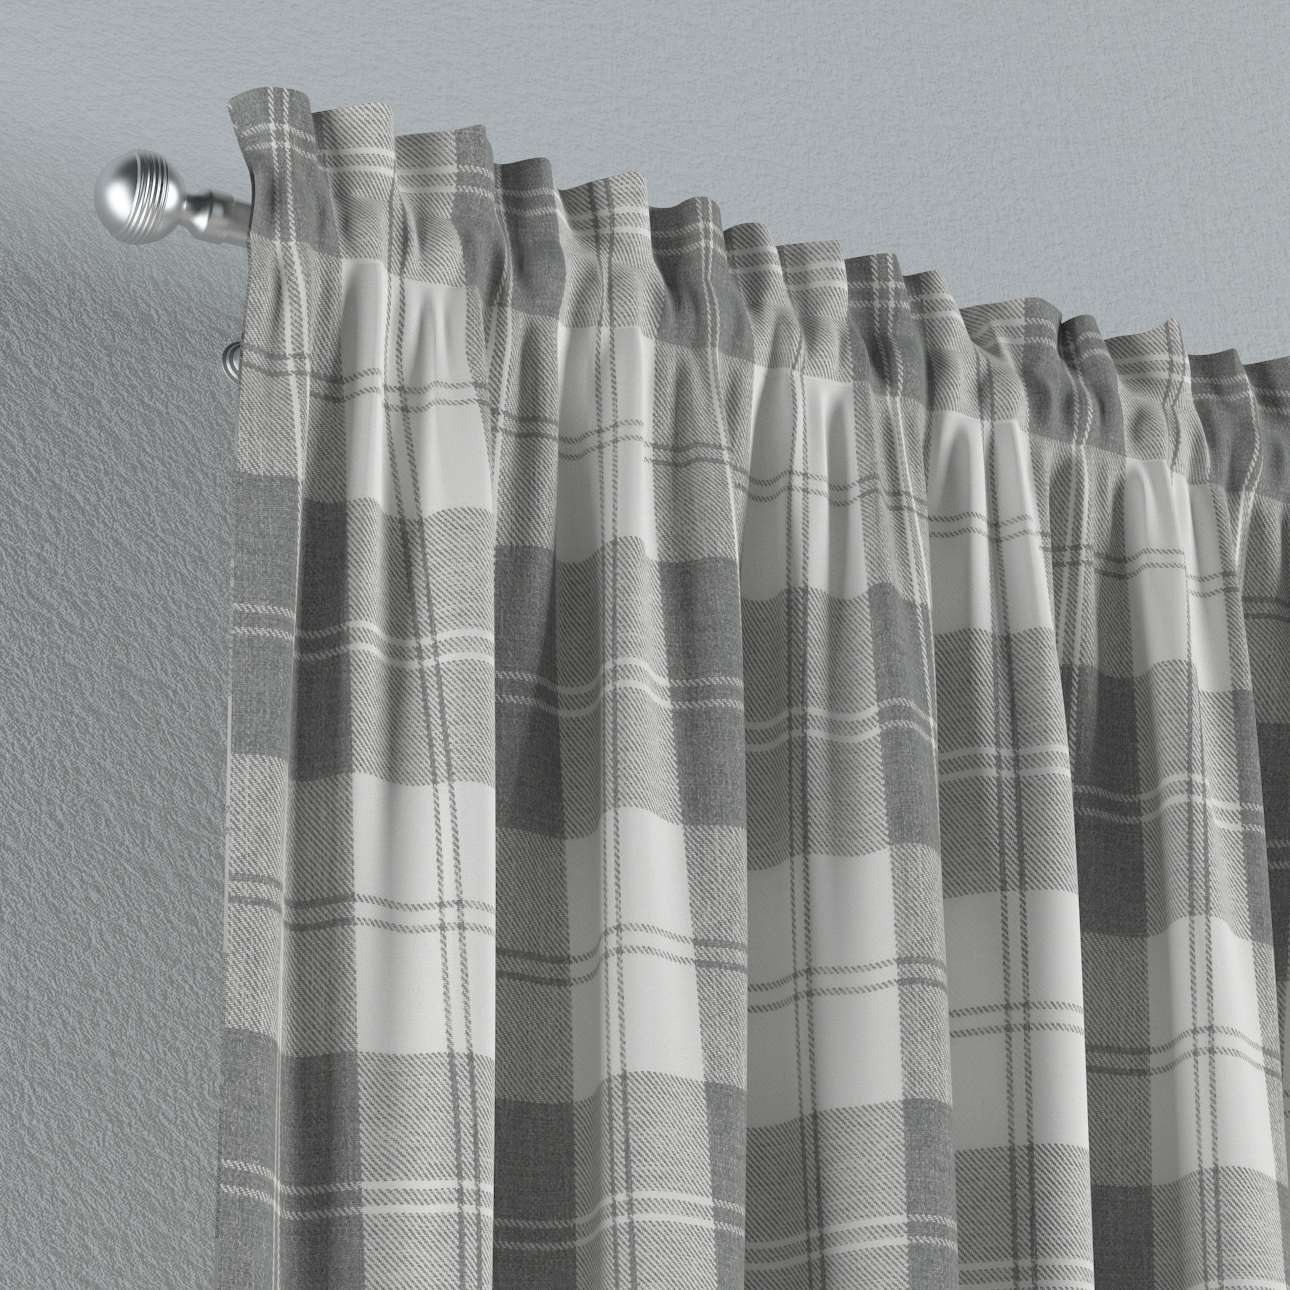 Slot and frill curtains 130 × 260 cm (51 × 102 inch) in collection Edinburgh, fabric: 115-79